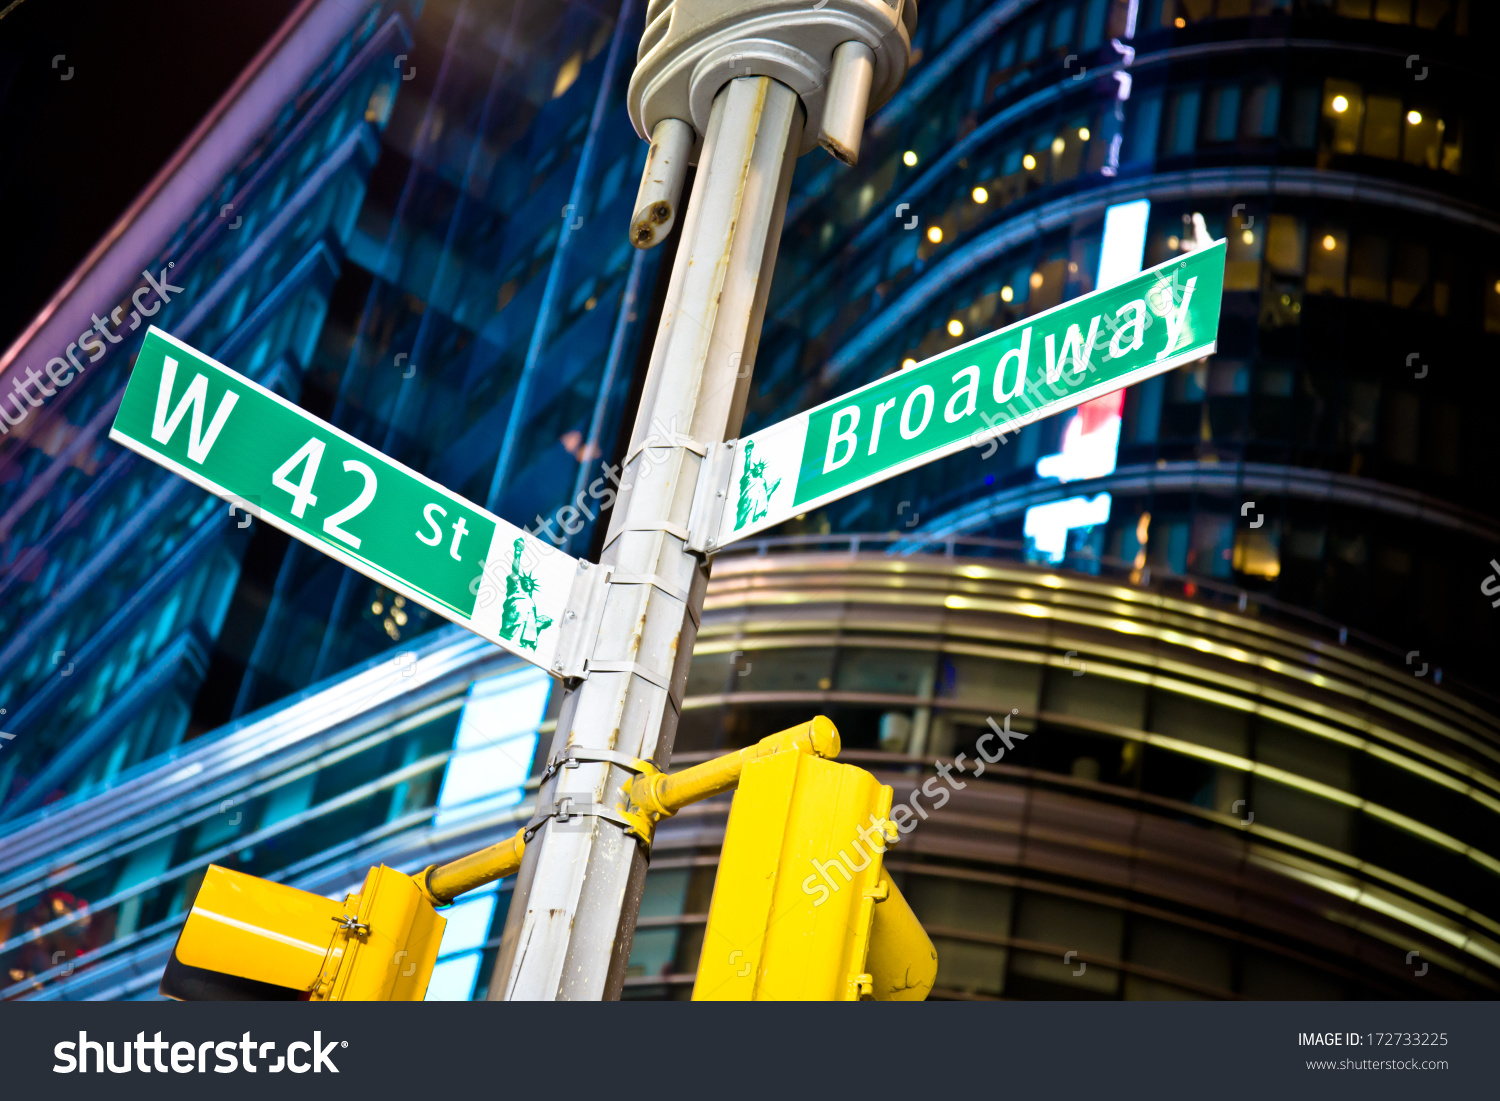 hight resolution of 42nd street and broadway intersection in new york s times square